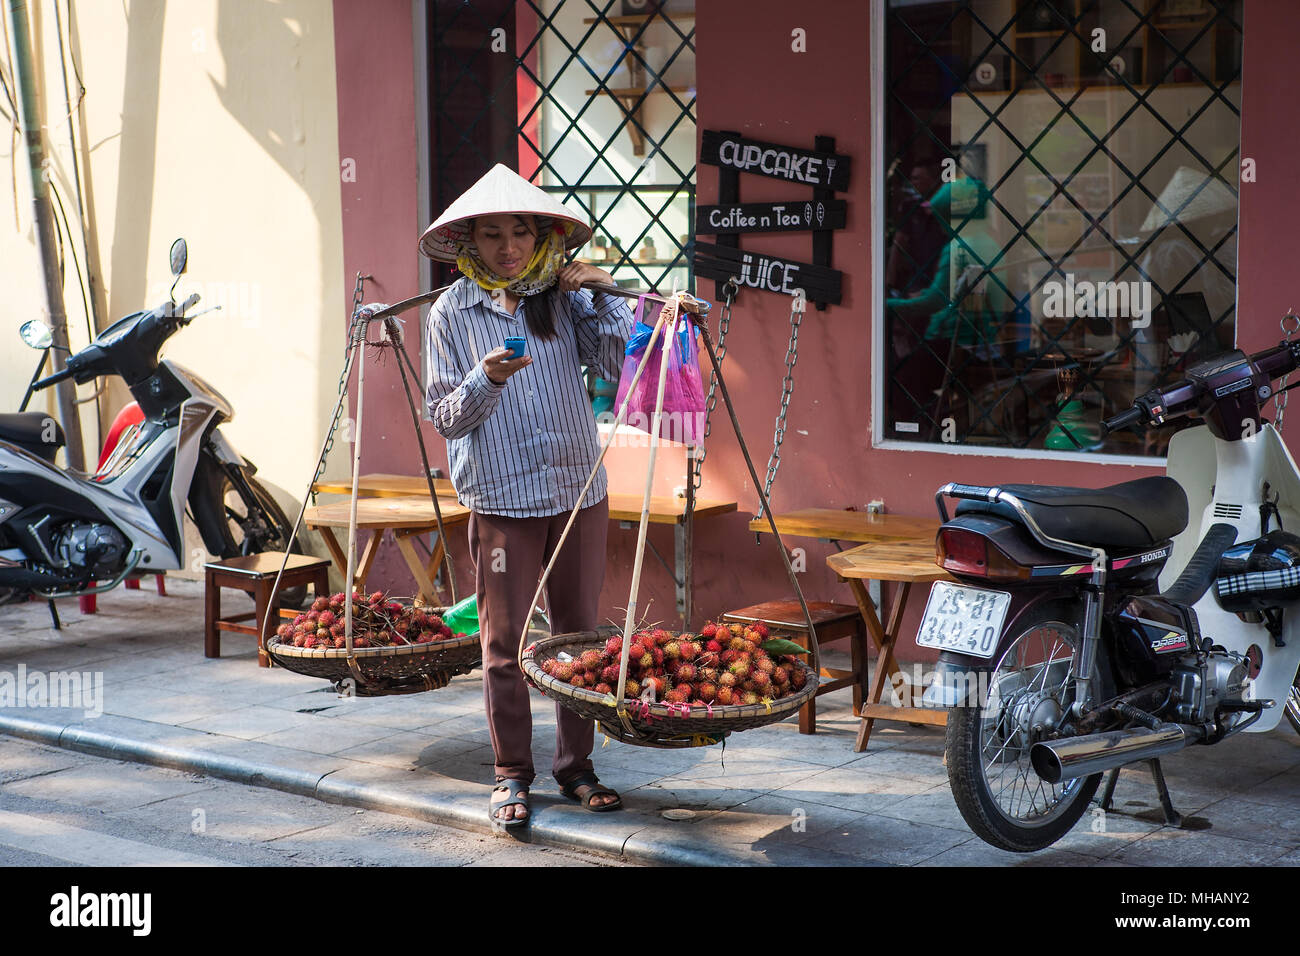 Traditional street-seller with yoke baskets, leaf-hat and mobile phone, Mã Mây, Hoàn Kiếm, Hà Nội, Vietnam - Stock Image